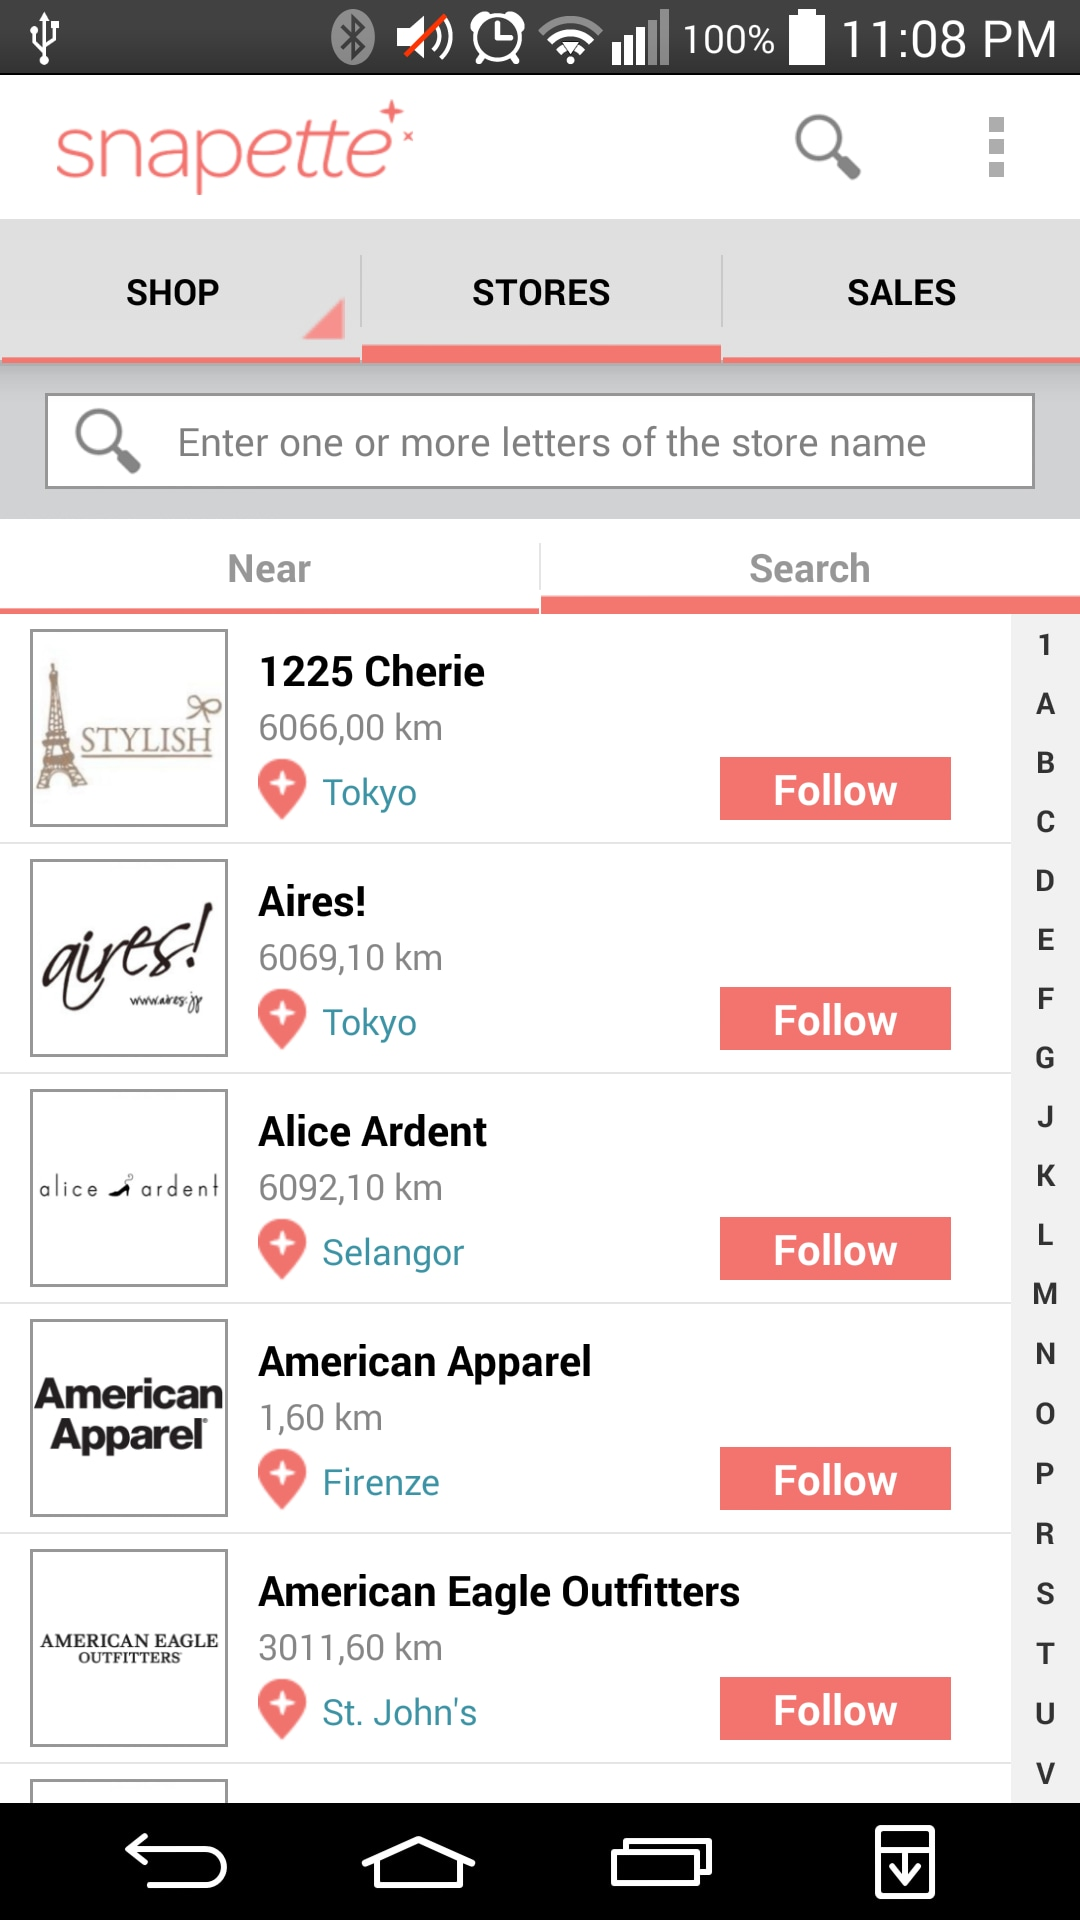 snapette_shopping social su Android (9)